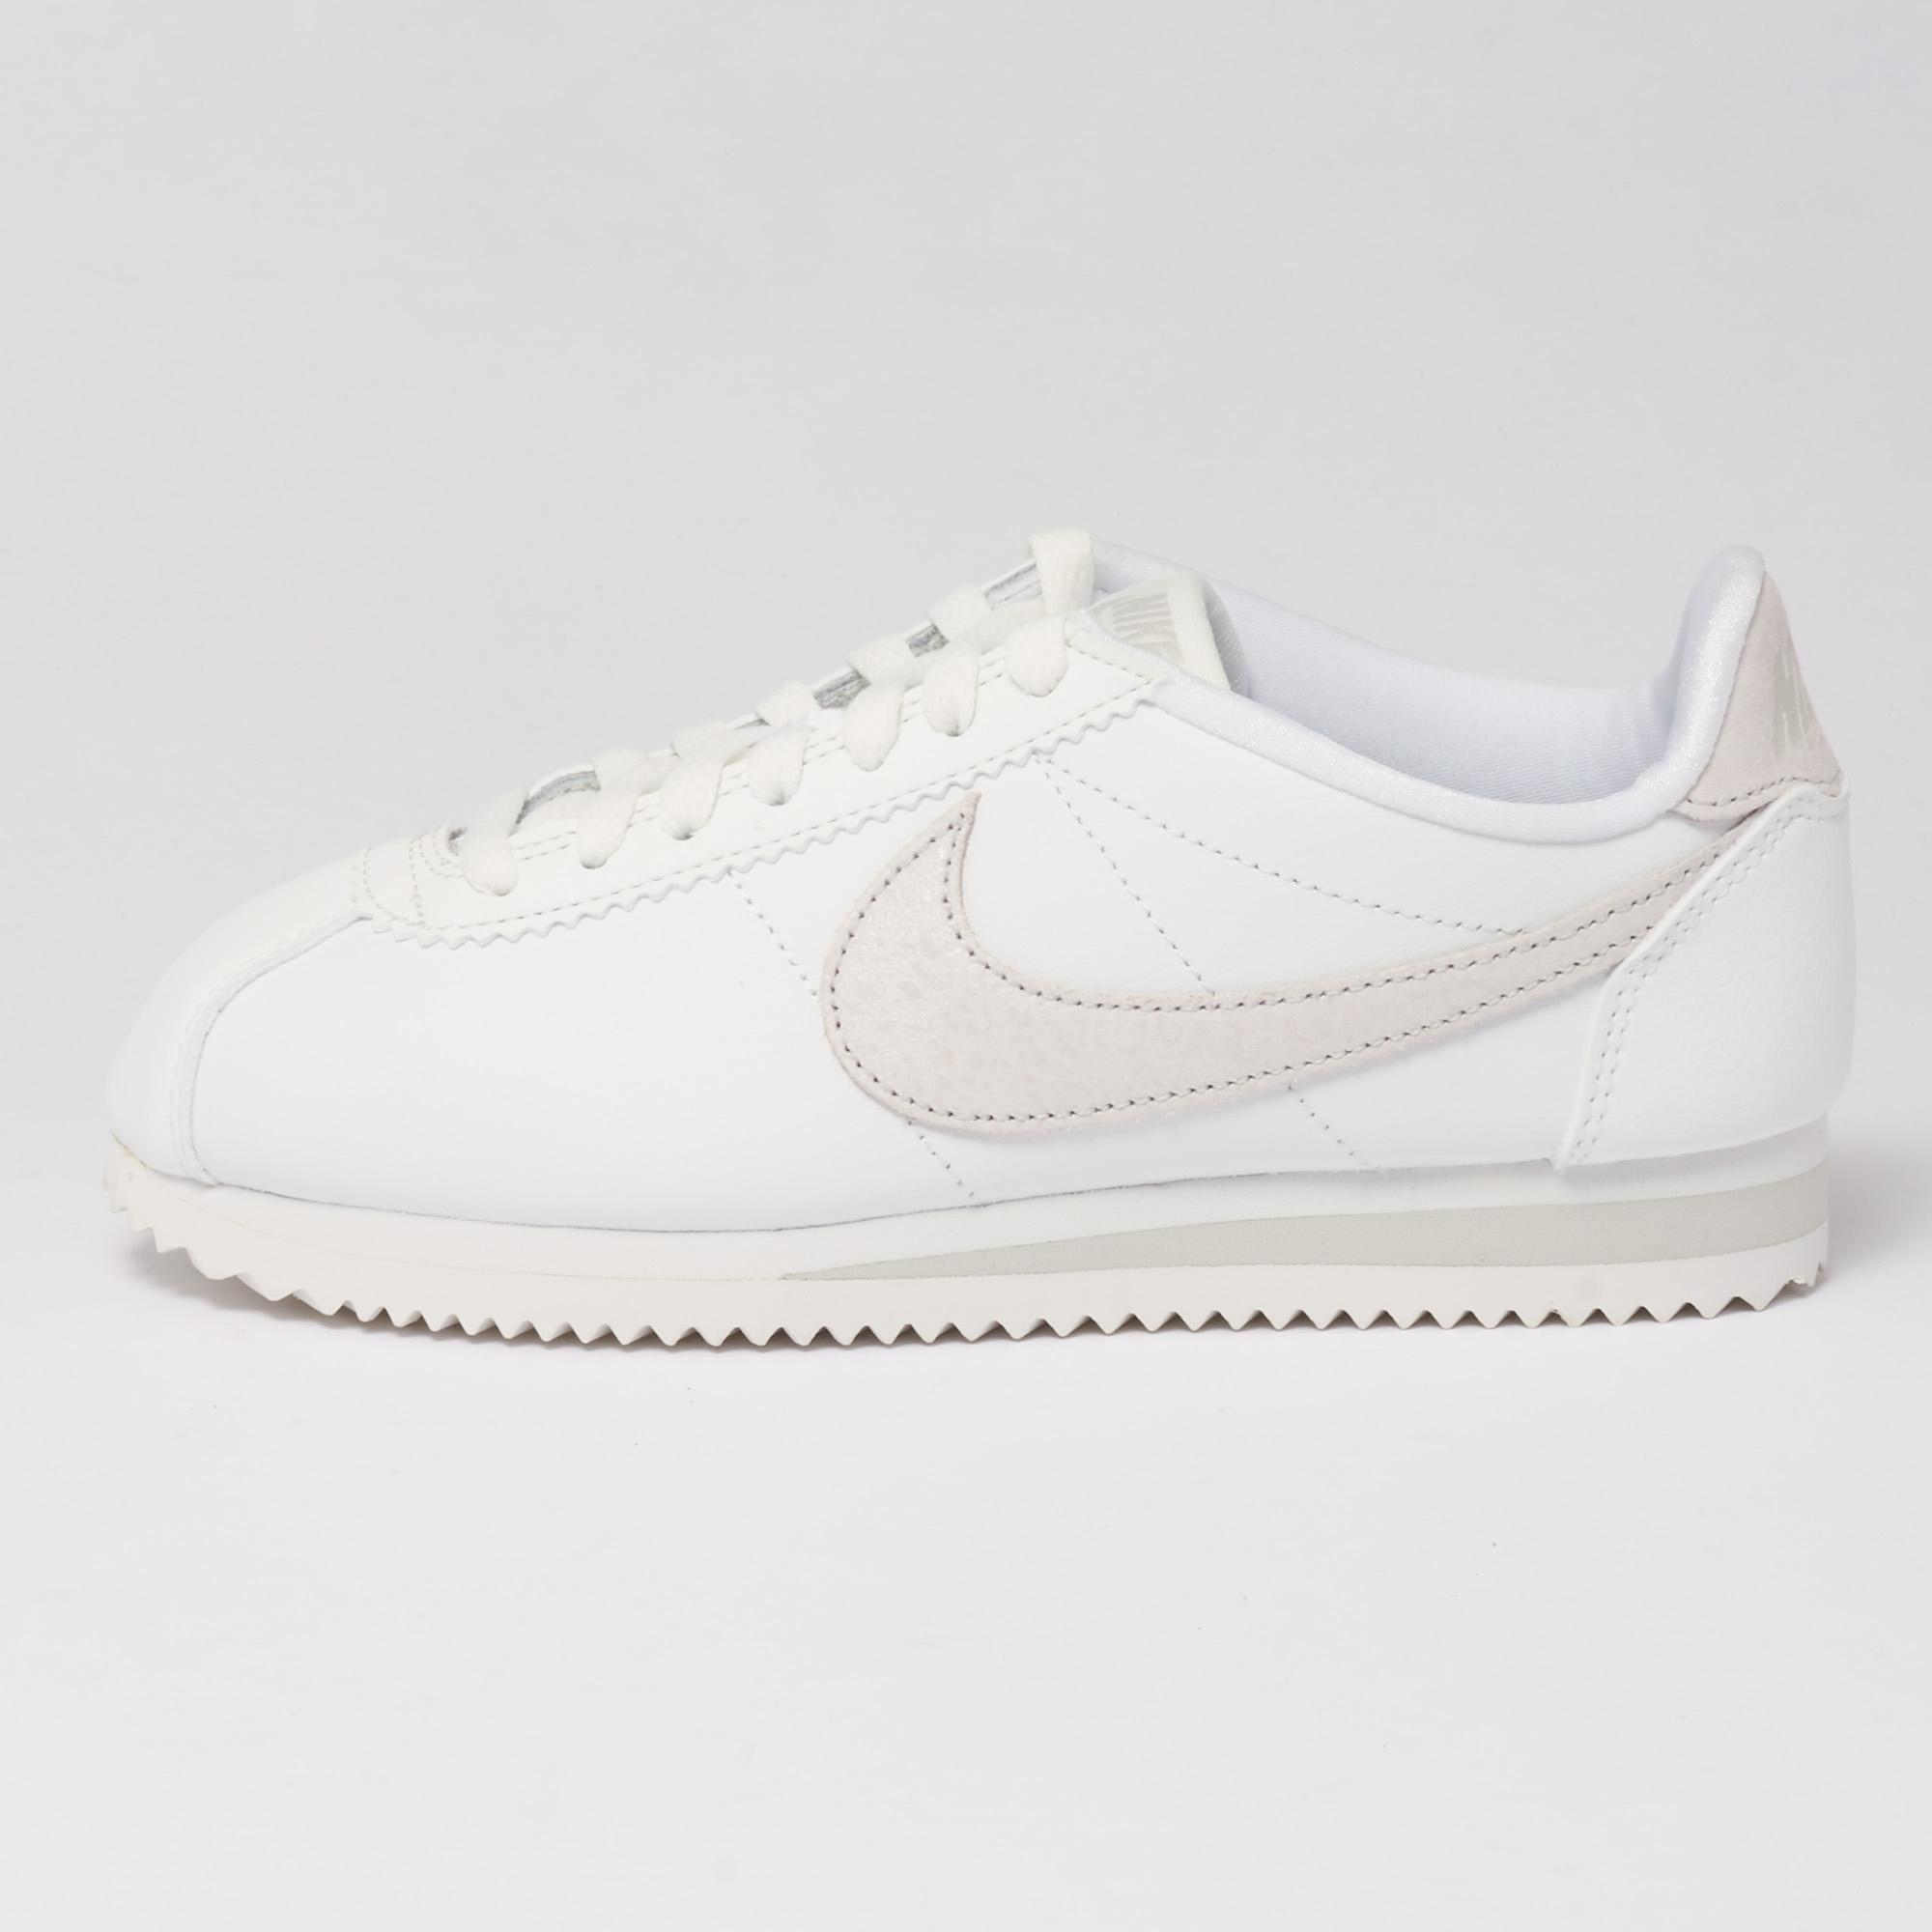 new styles 611df 143c7 Lyst - Nike Classic Cortez Gymnastics Shoes in White